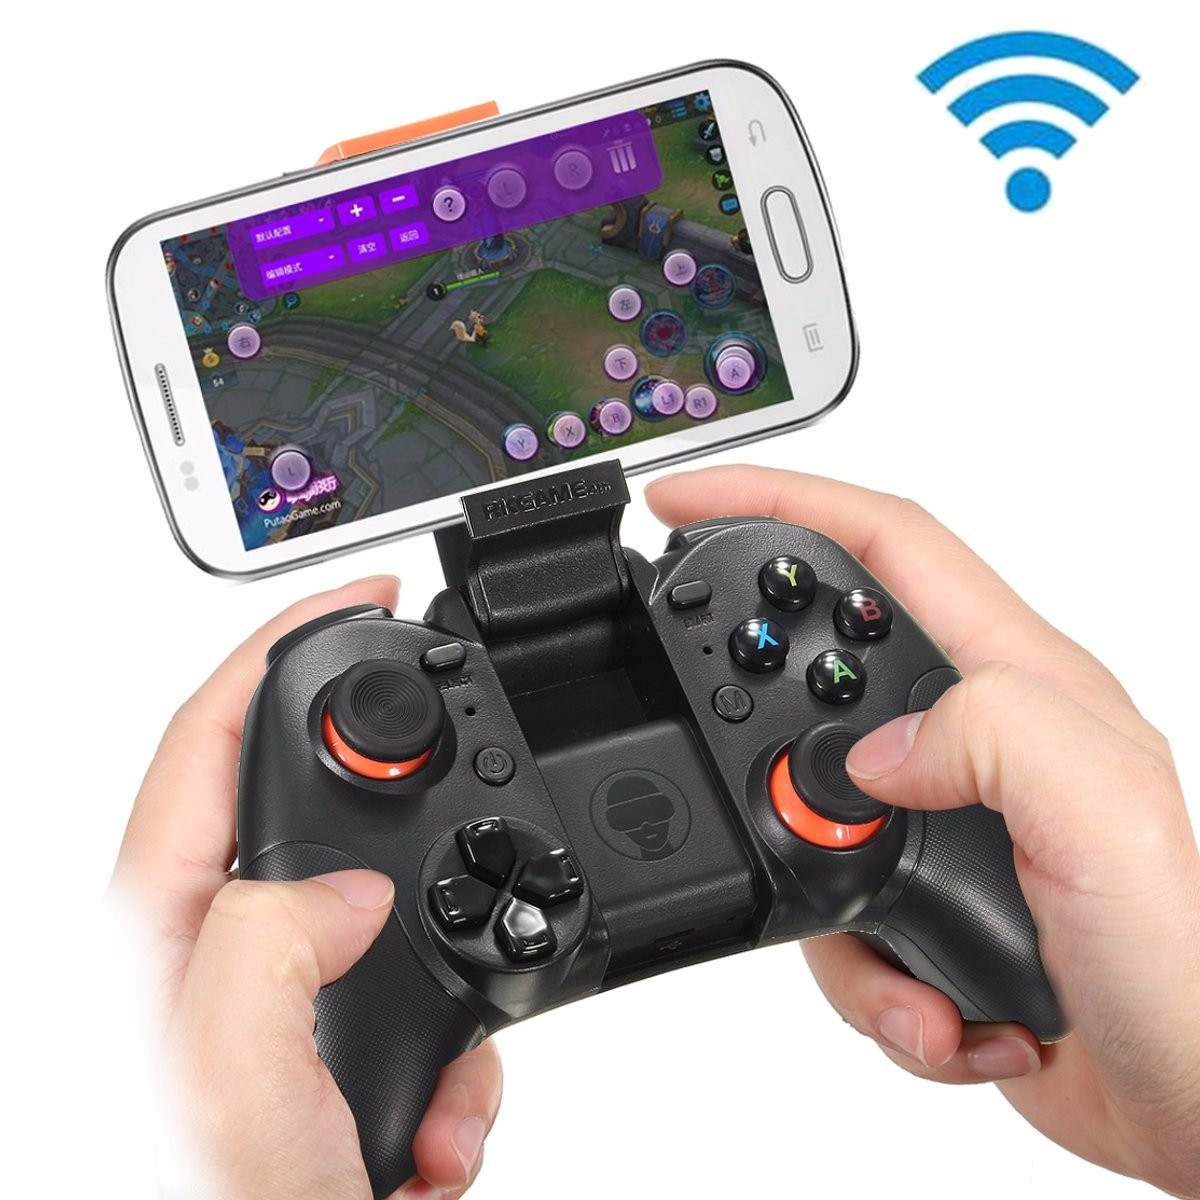 Bluetooth Wireless Game Controller Game pad Gaming Joystick for Android iOS PC emulator